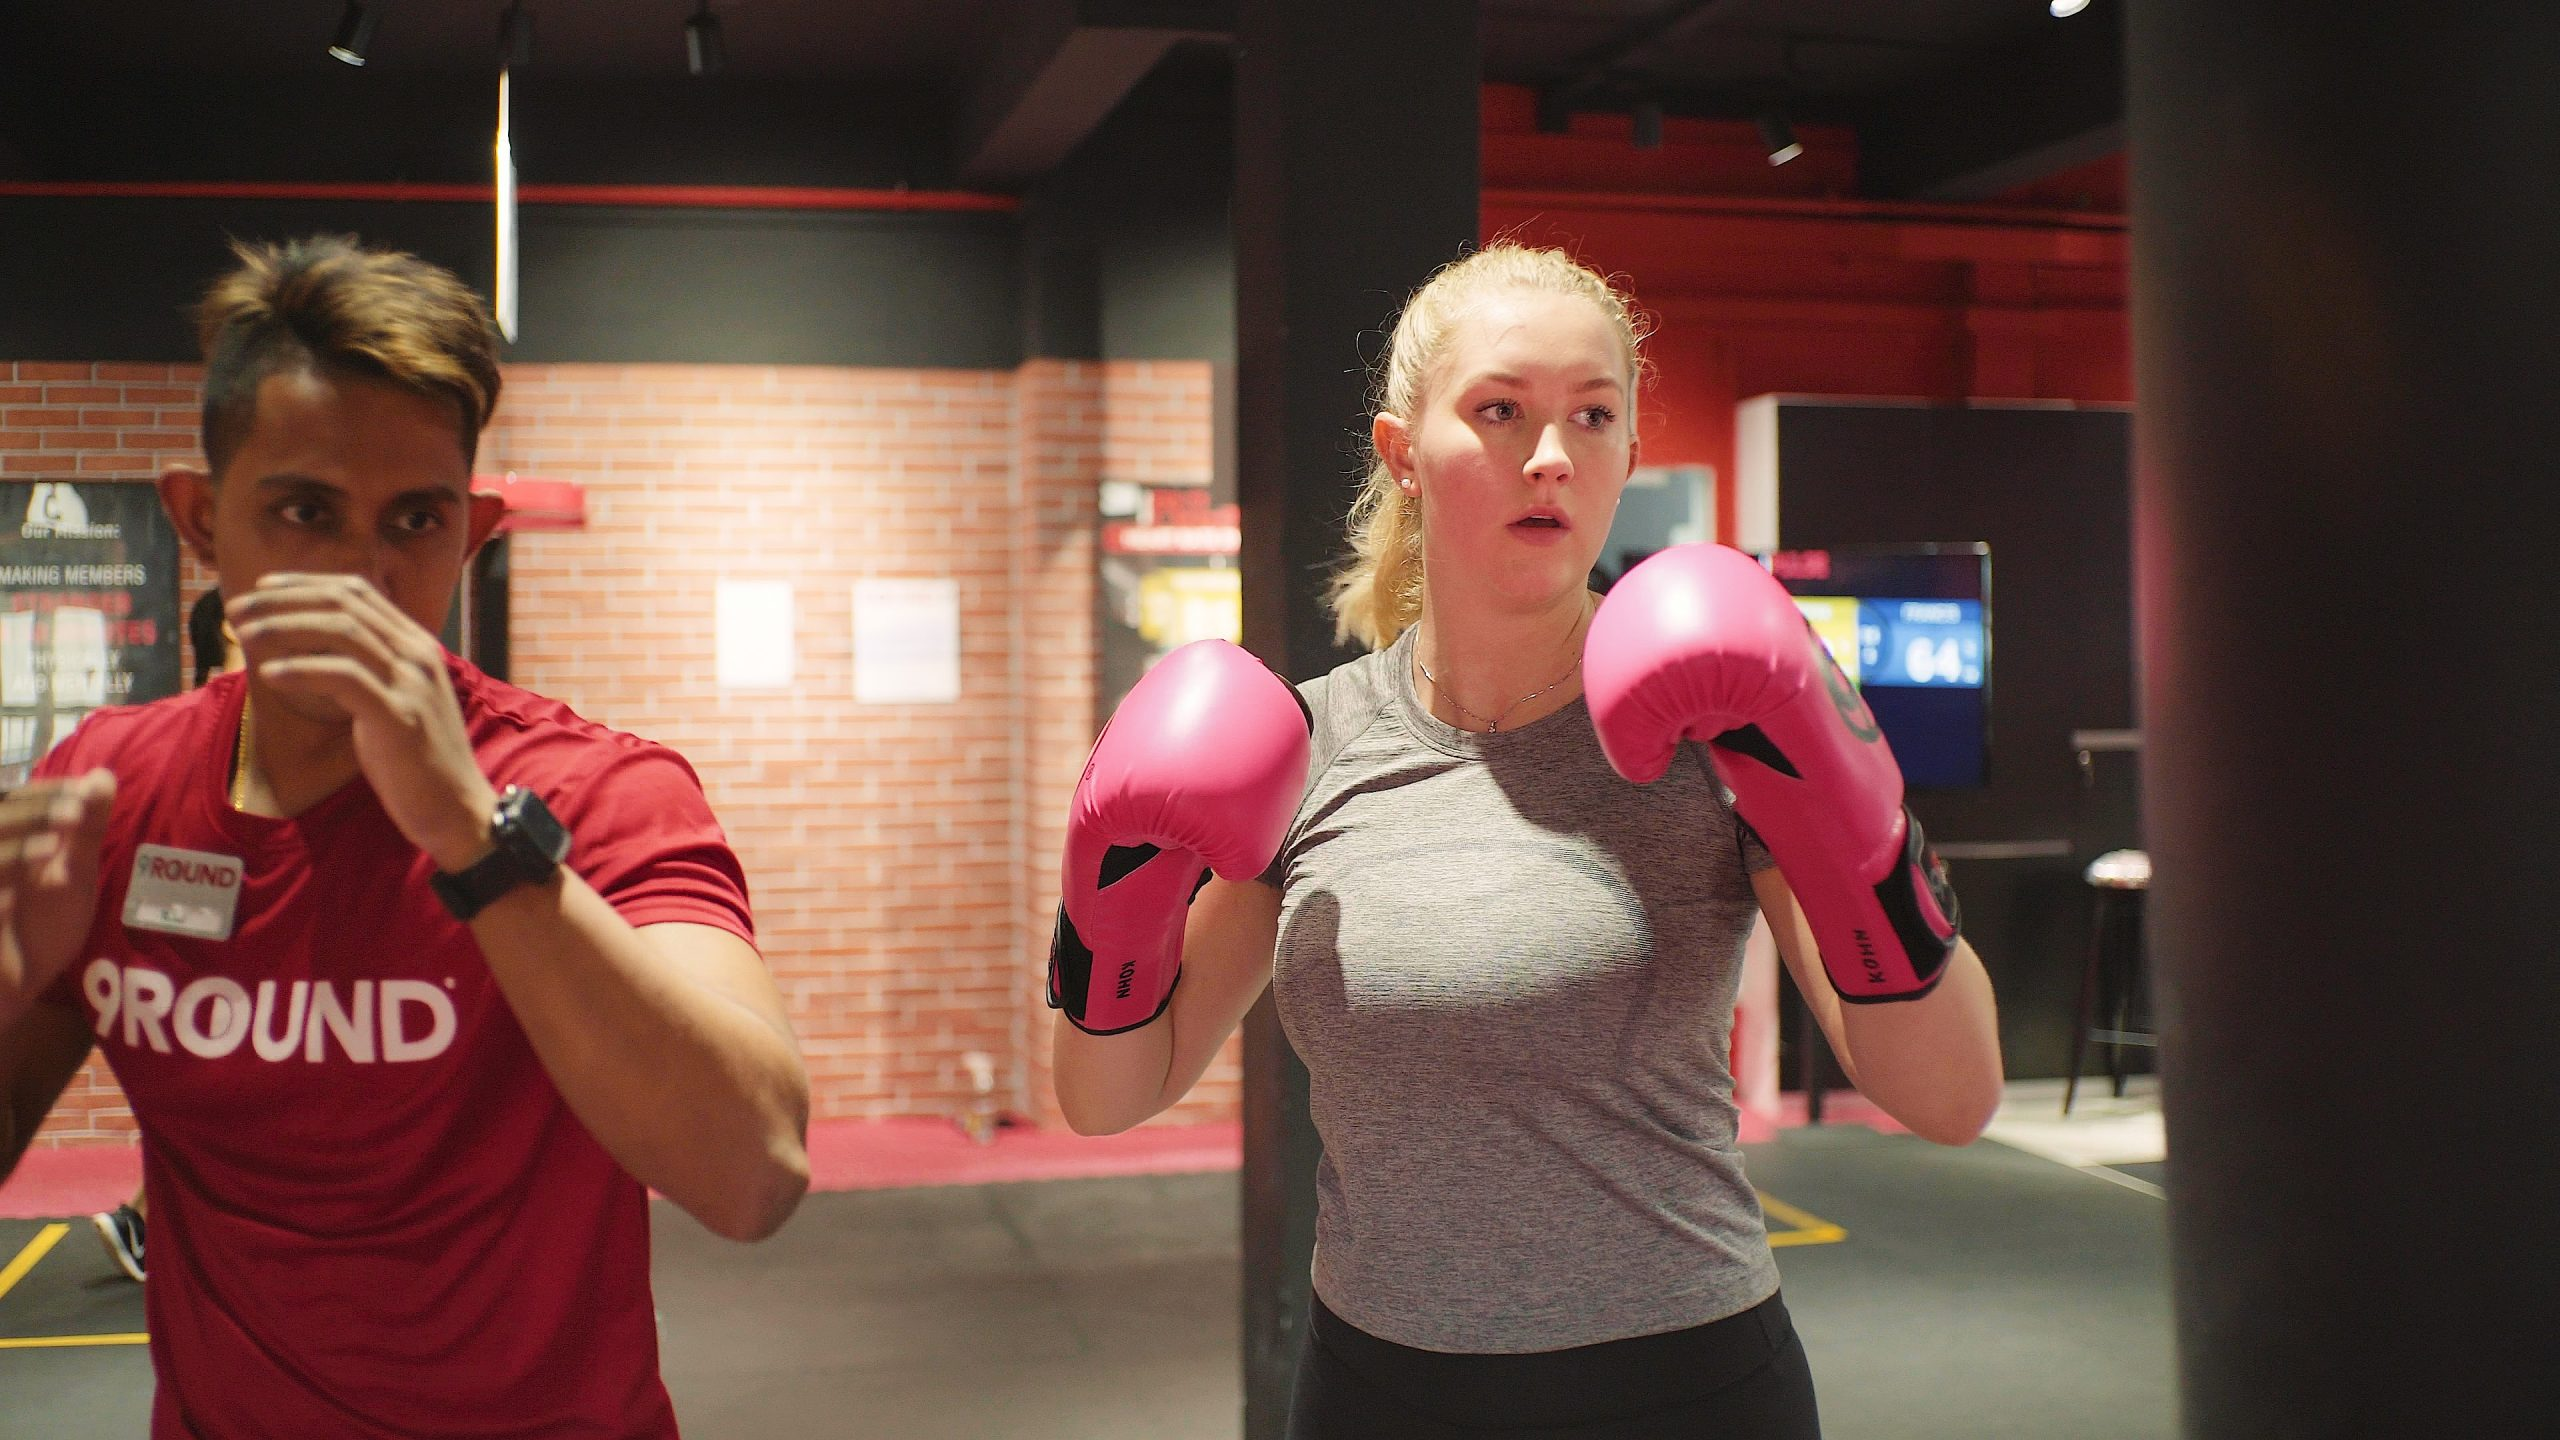 Kick, Punch, Sweat! 9Round is Calling Busy Moms to Try Kickboxing!